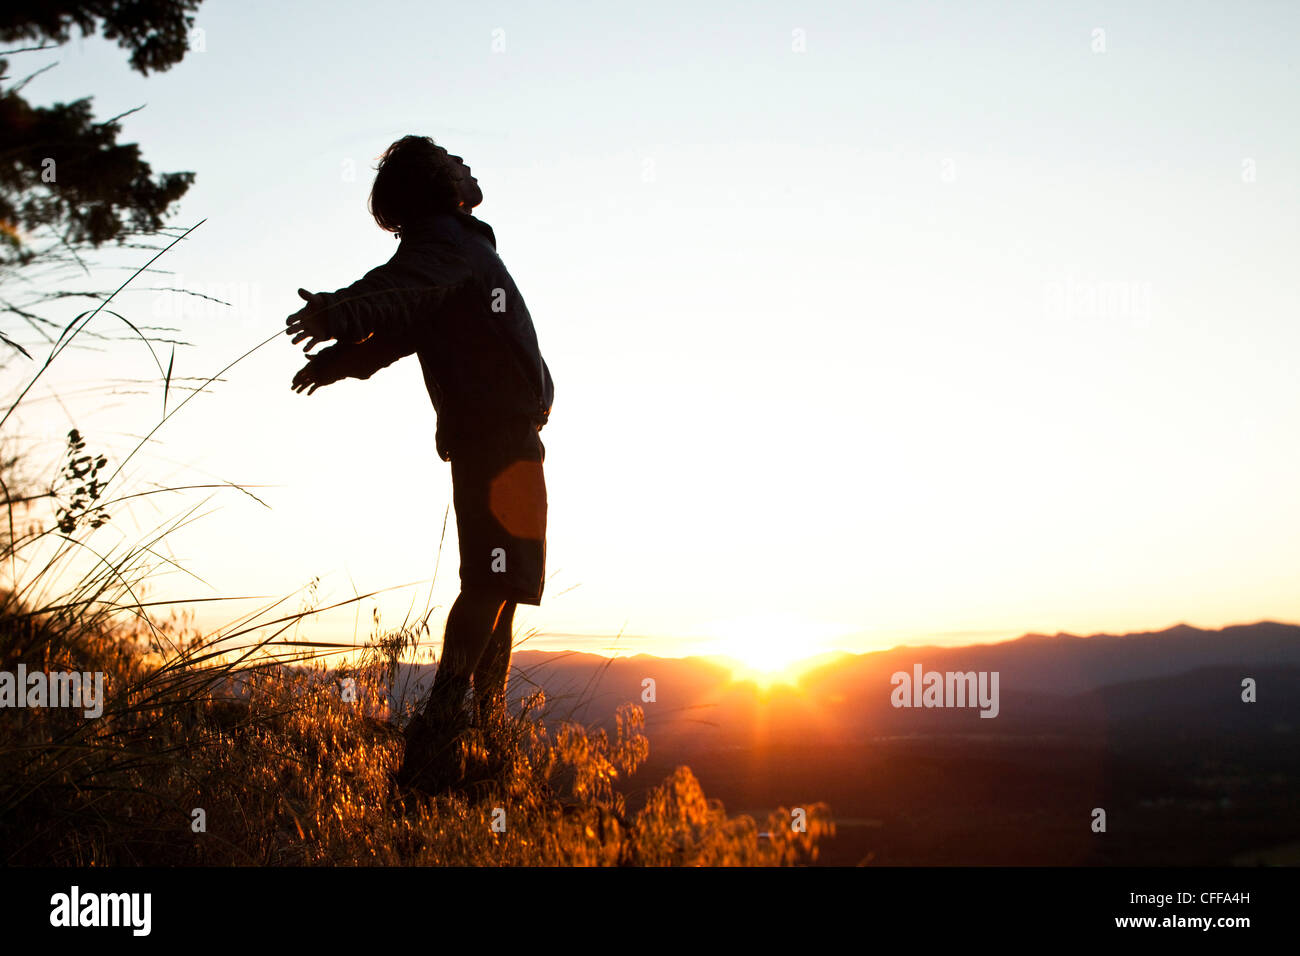 A young man greets the morning on a hiking trip as the sunrises over a valley in Idaho. - Stock Image